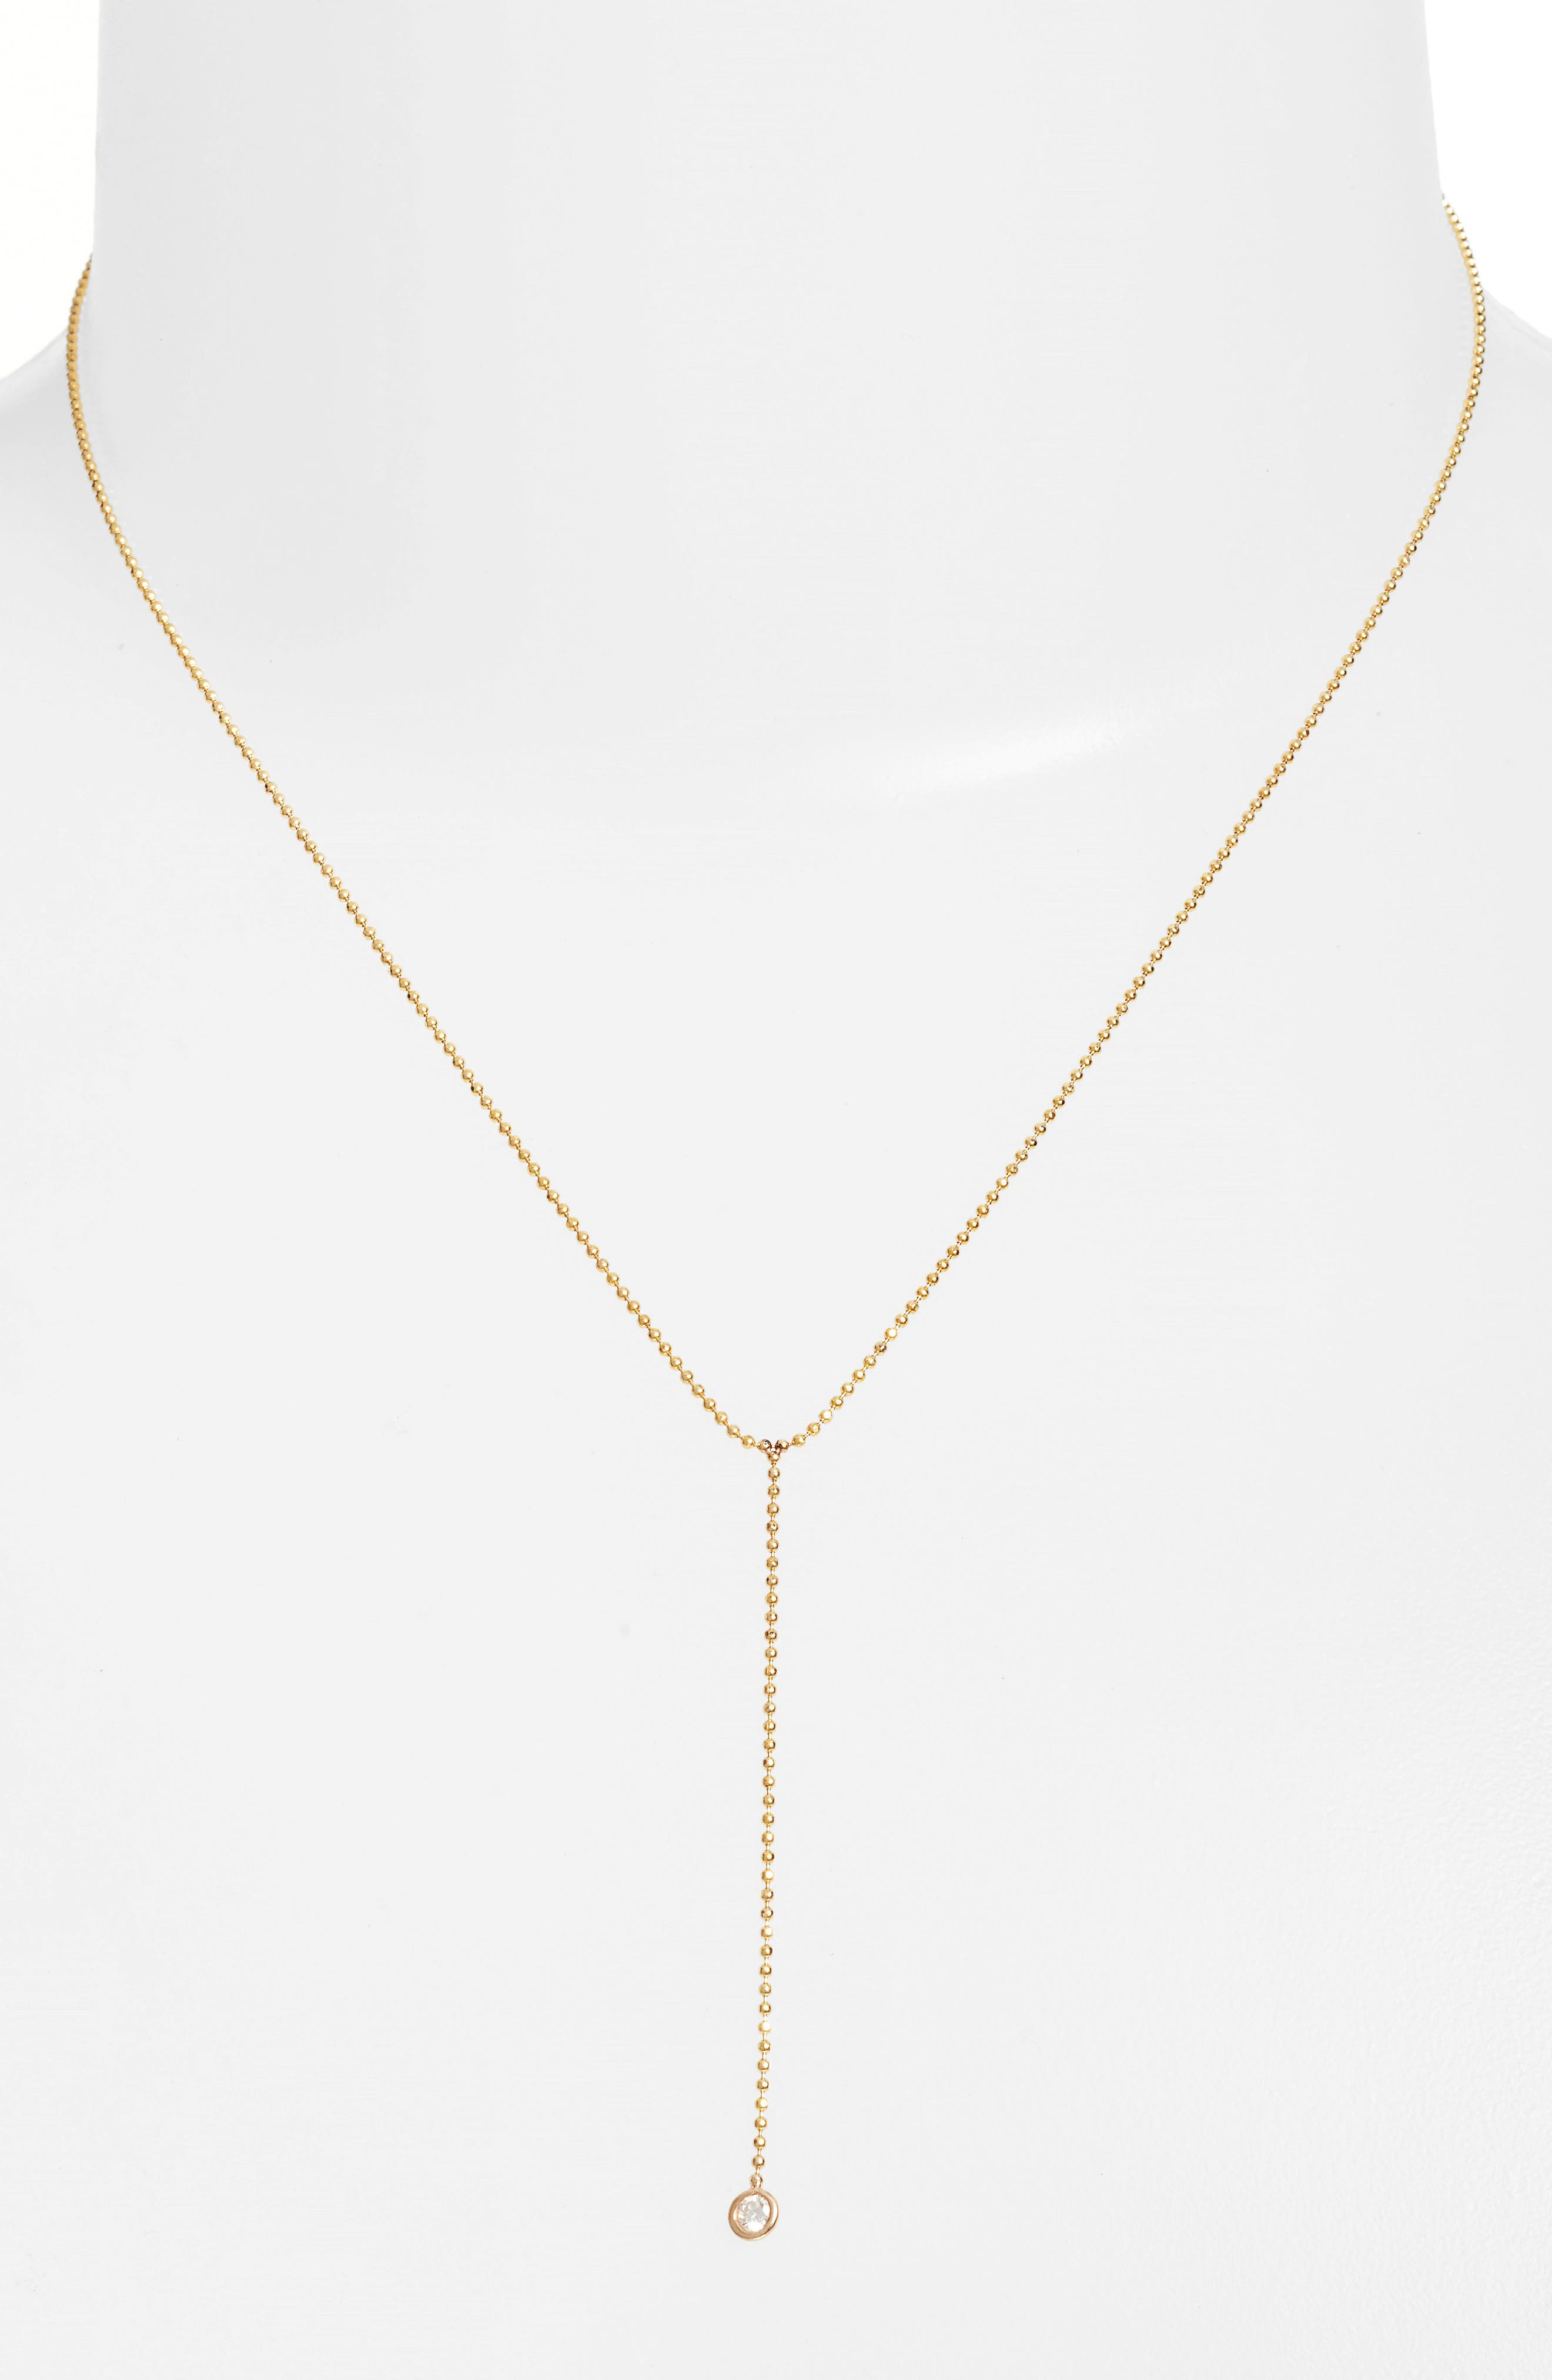 Diamond Y-Necklace,                             Alternate thumbnail 2, color,                             YELLOW GOLD